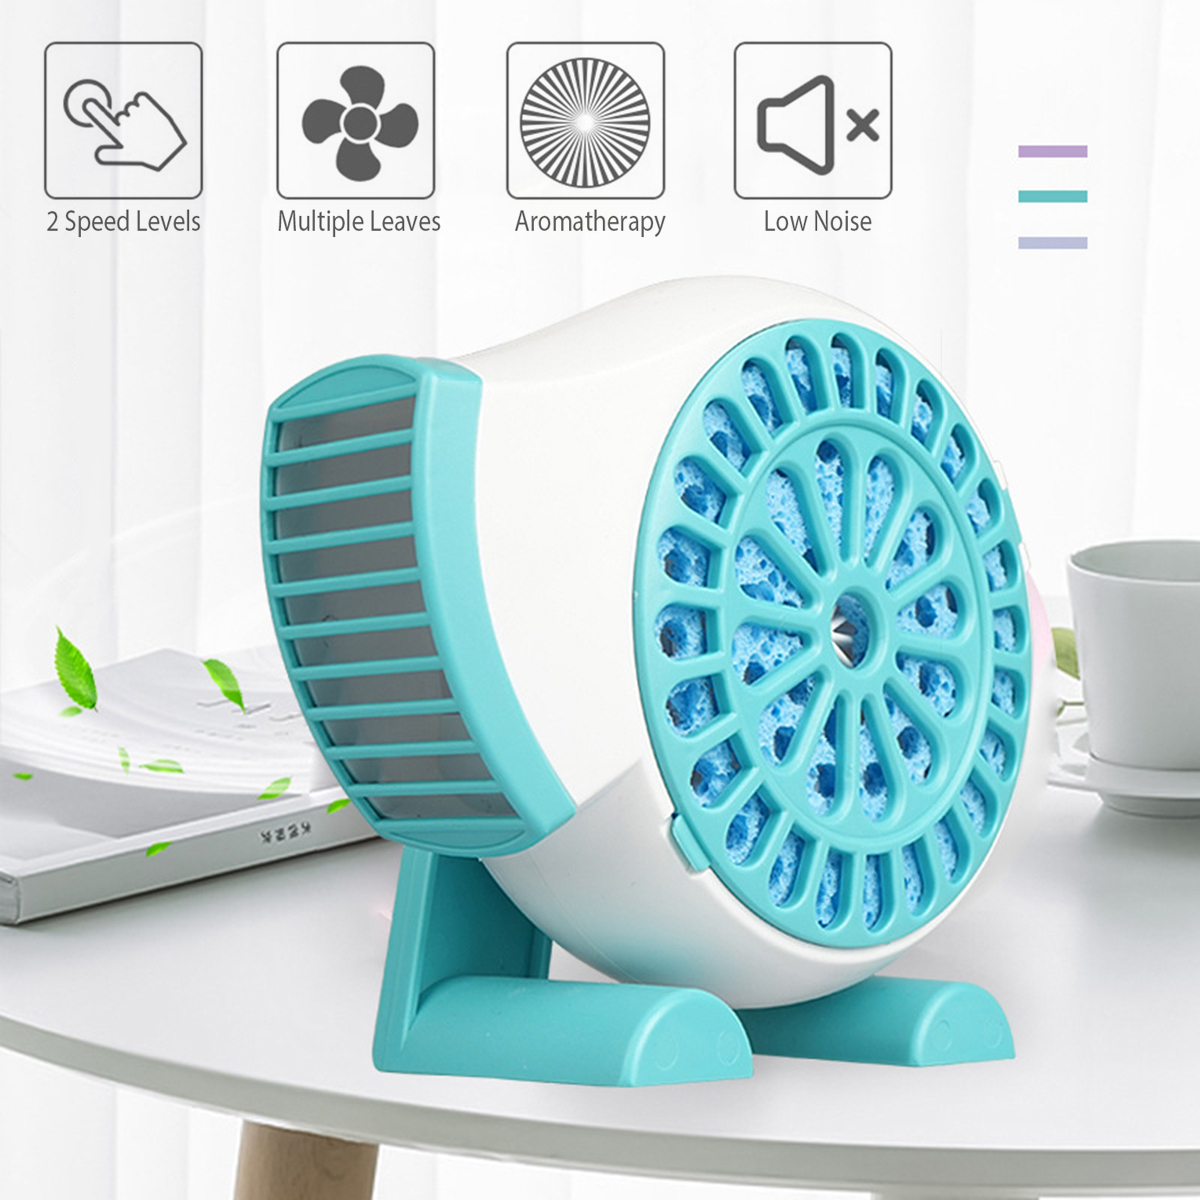 Creative Mini Fan Handheld USB Fan Rechargeable Strong Wind Cooling Fan Ultrathin Low Noise Summer Essentials